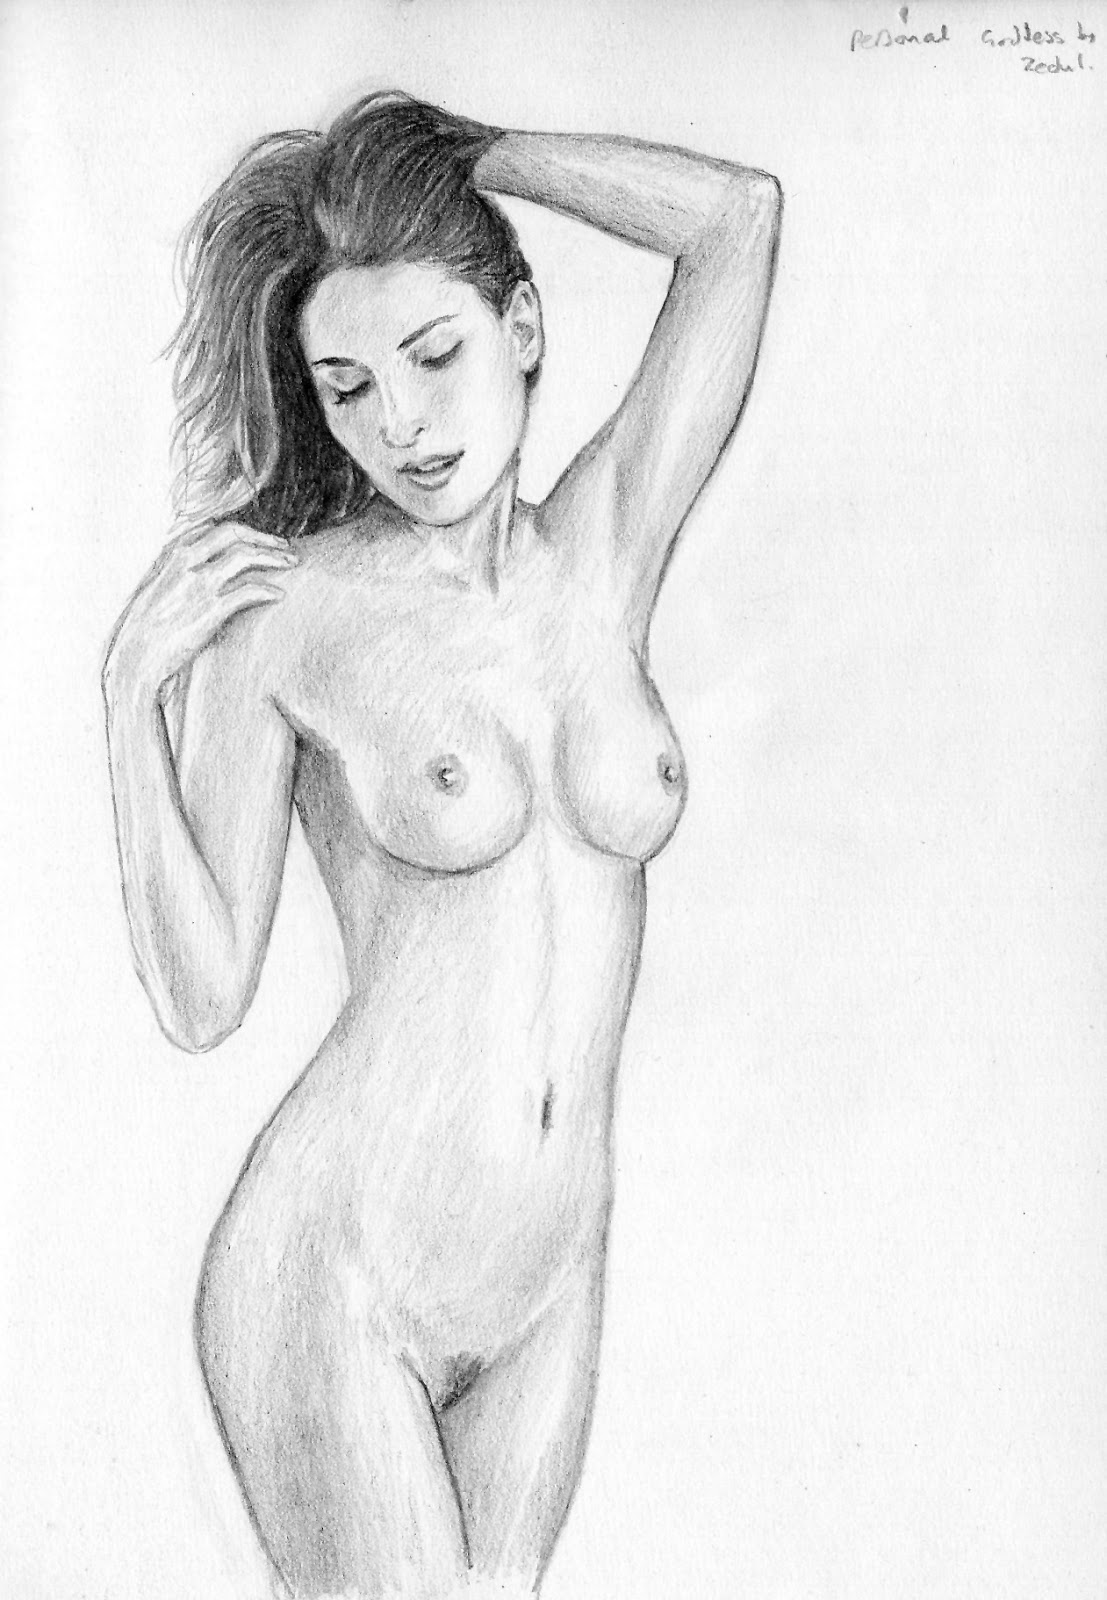 Nude sex sketch wallpaper anime image